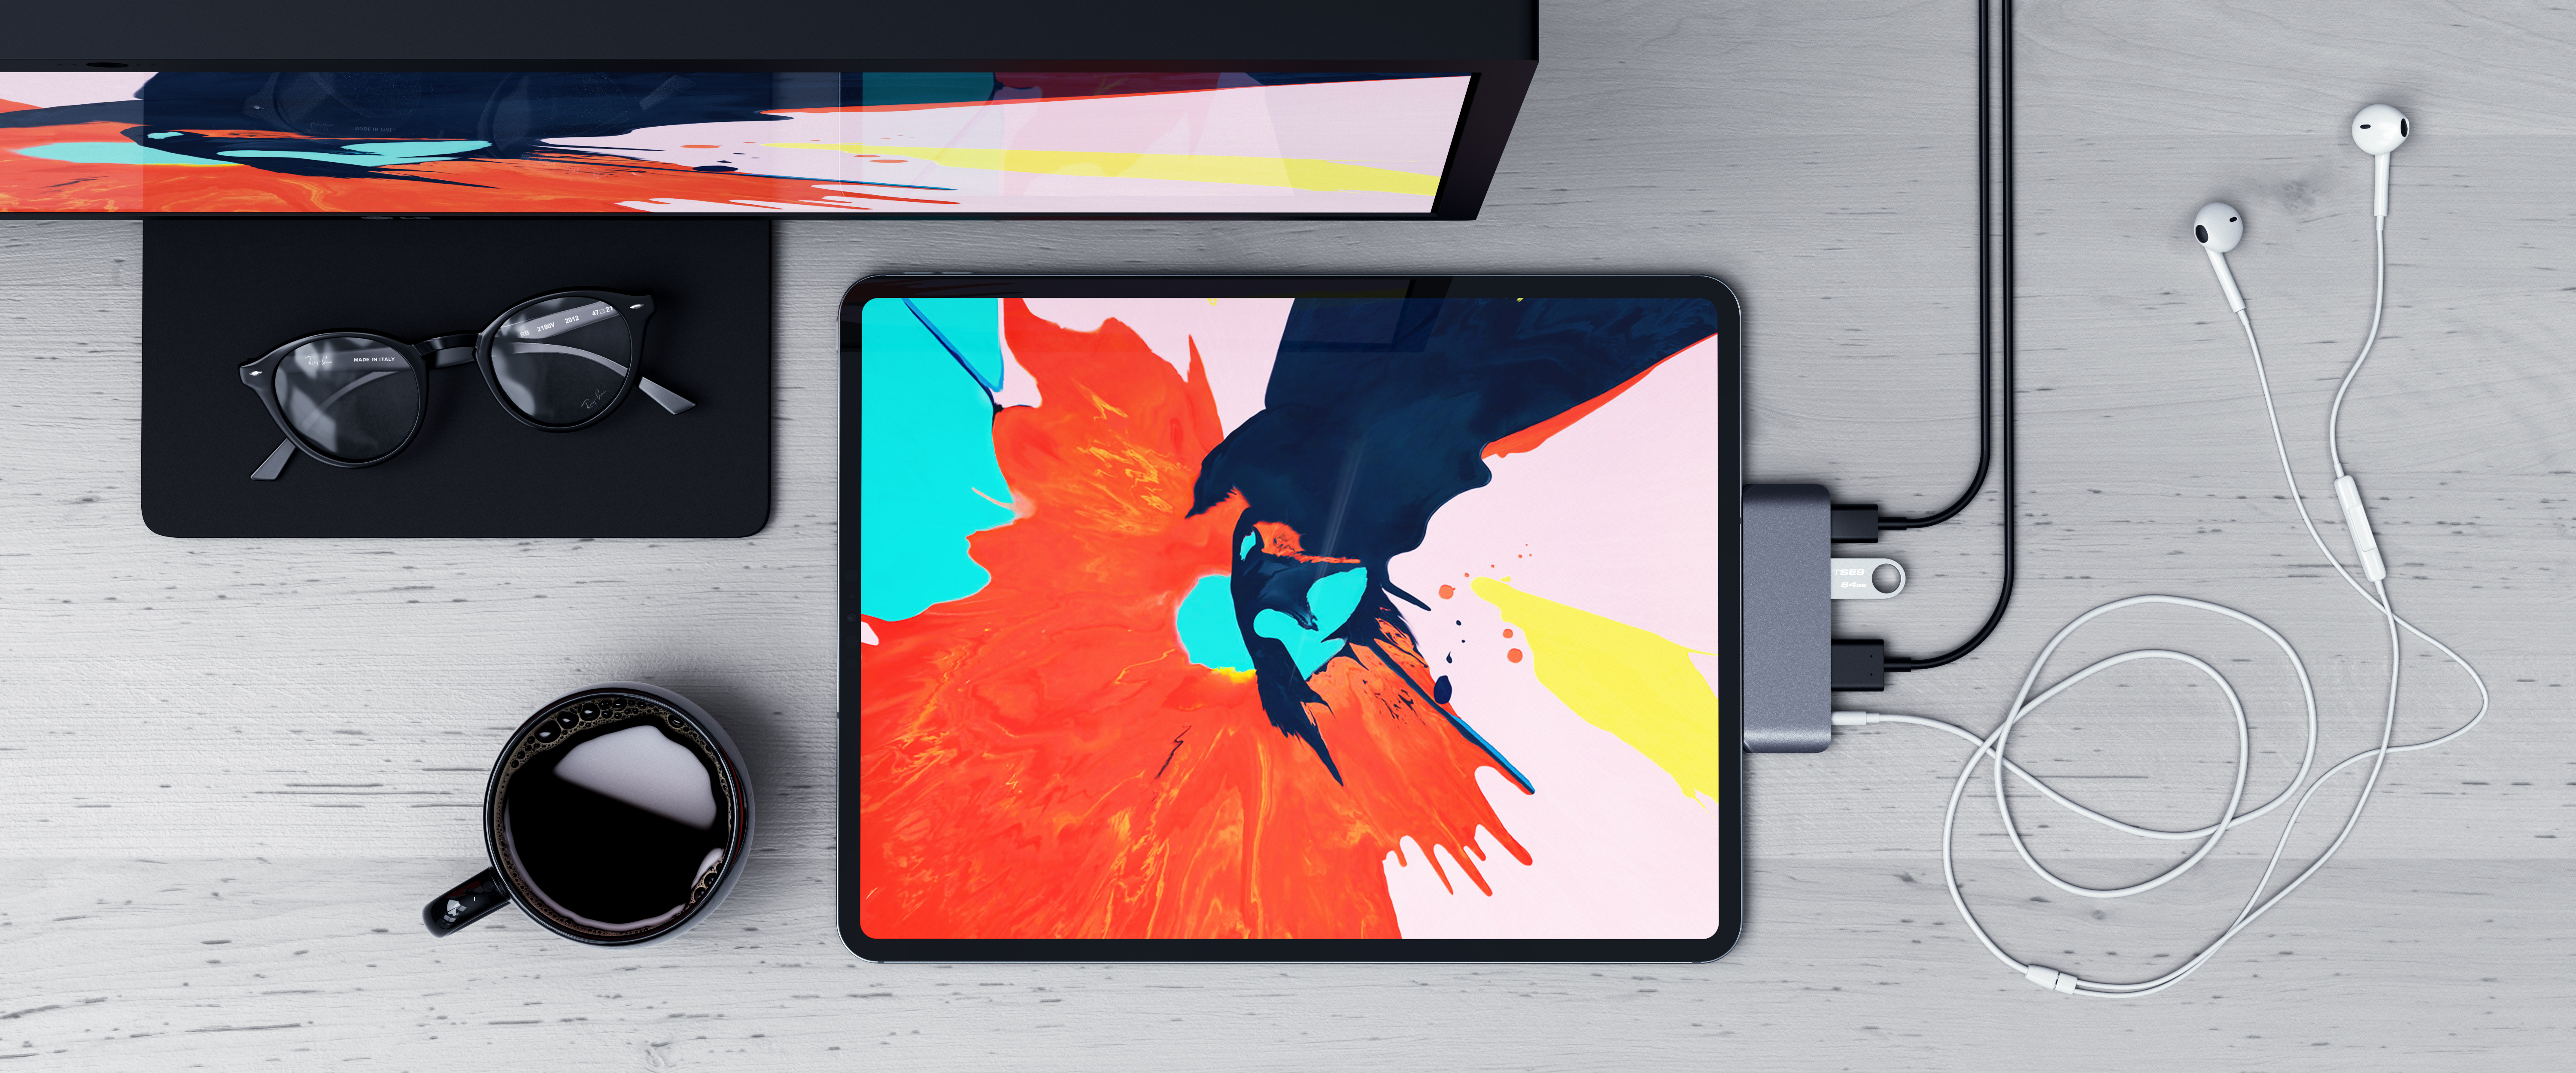 Best Satechi Products For The 2018 iPad Pro USB-C